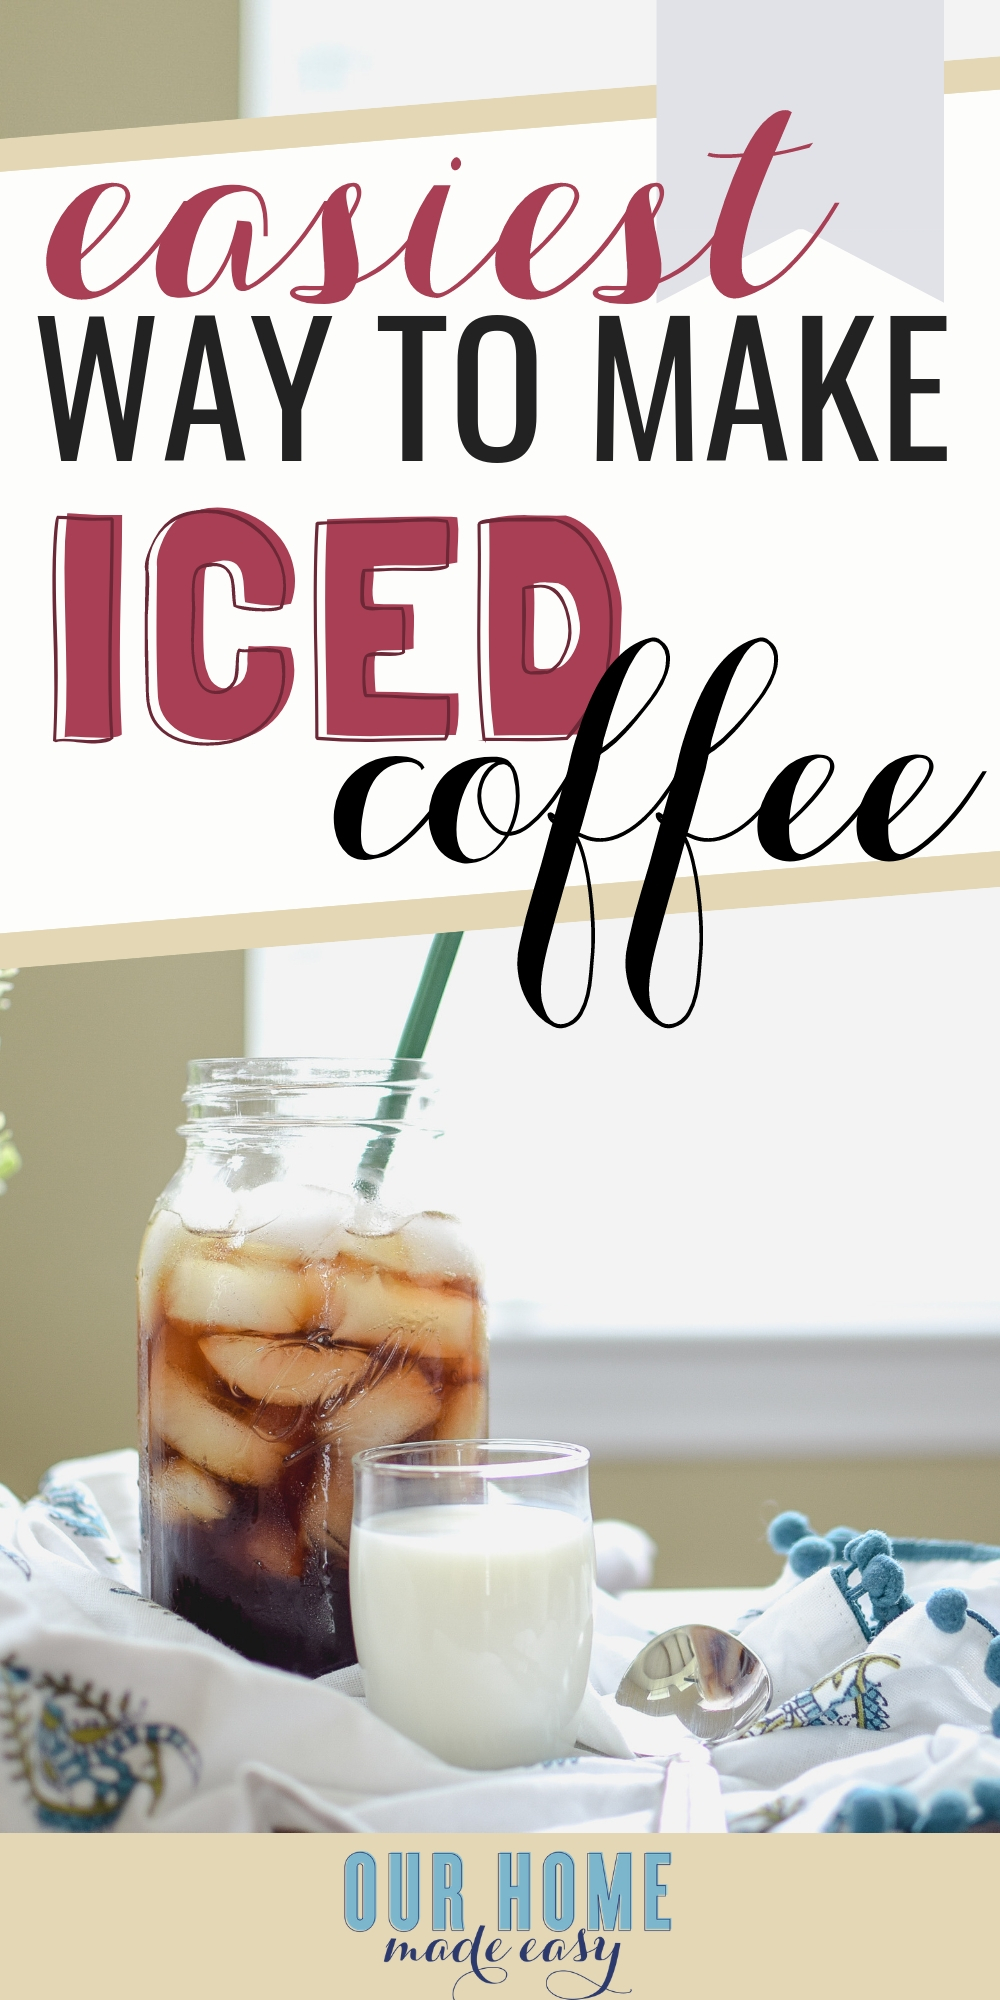 Cold Brew Coffee recipe using French Press